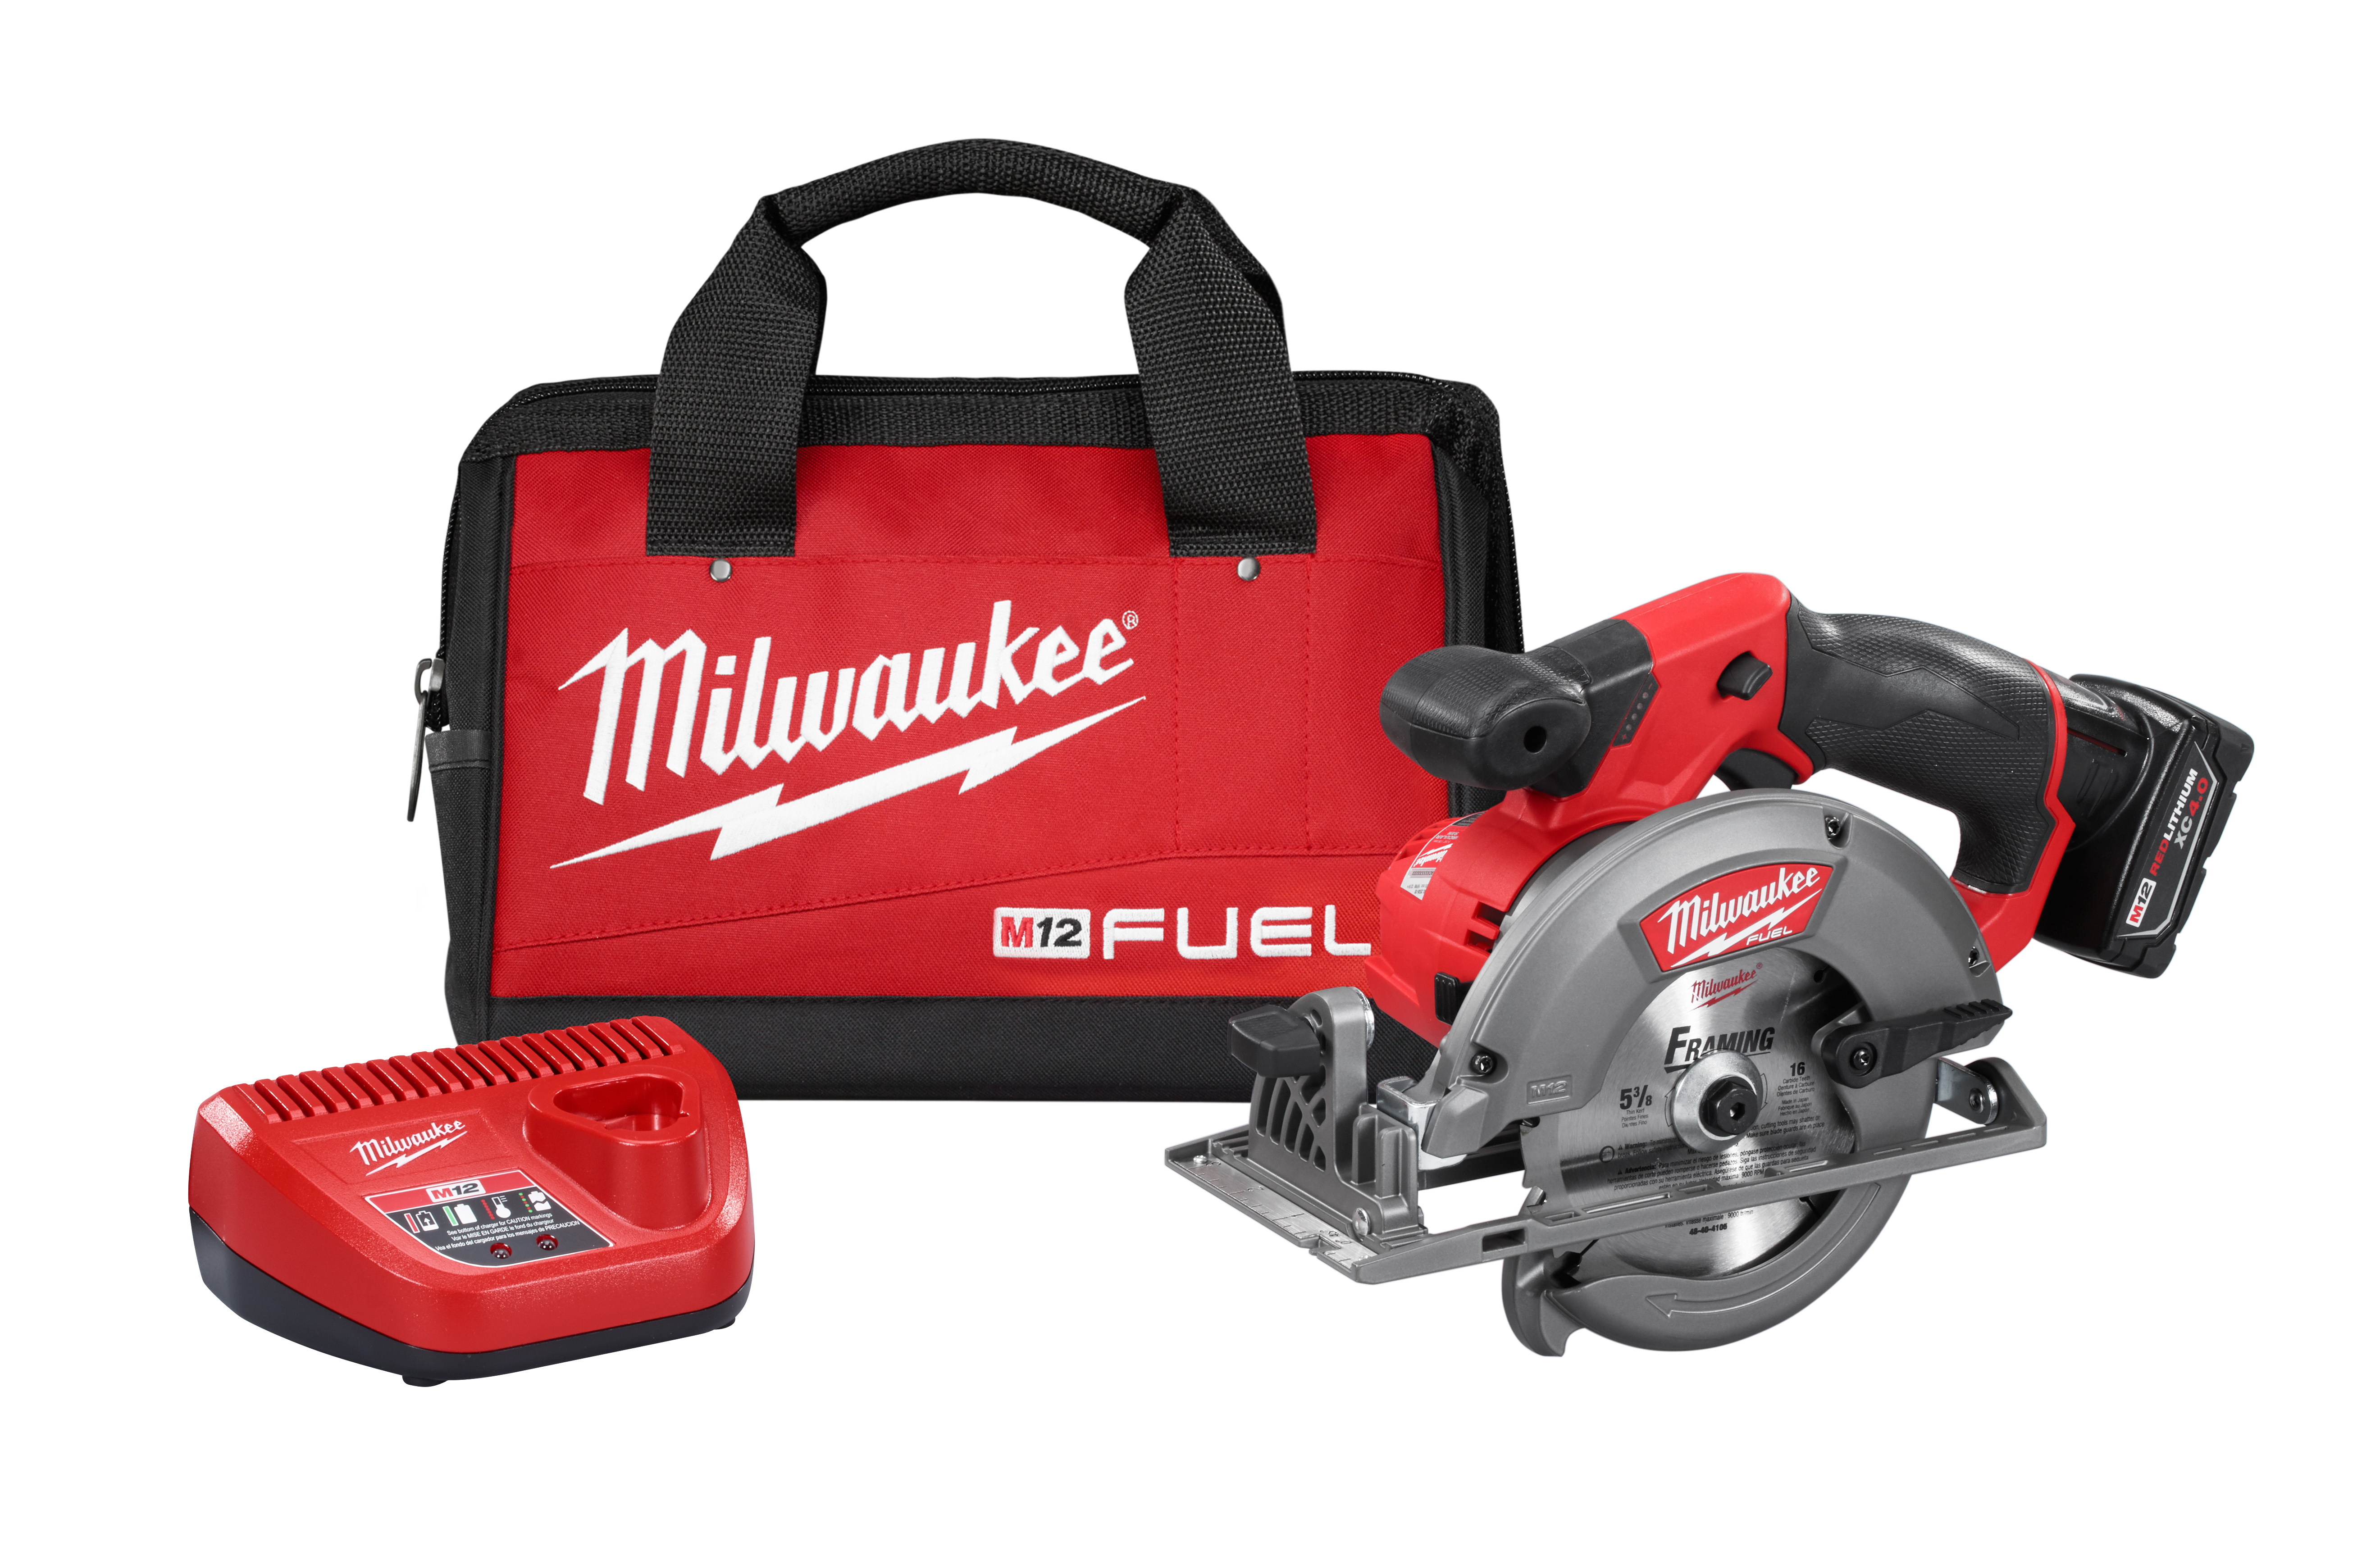 Milwaukee® M12™ FUEL™ 2530-21XC Cordless Circular Saw Kit, 5-3/8 in, 5-1/2 in Blade, 10 mm Arbor/Shank, 12 VDC, 1-1/8 in, 1-5/8 in D Cutting, Lithium-Ion Battery